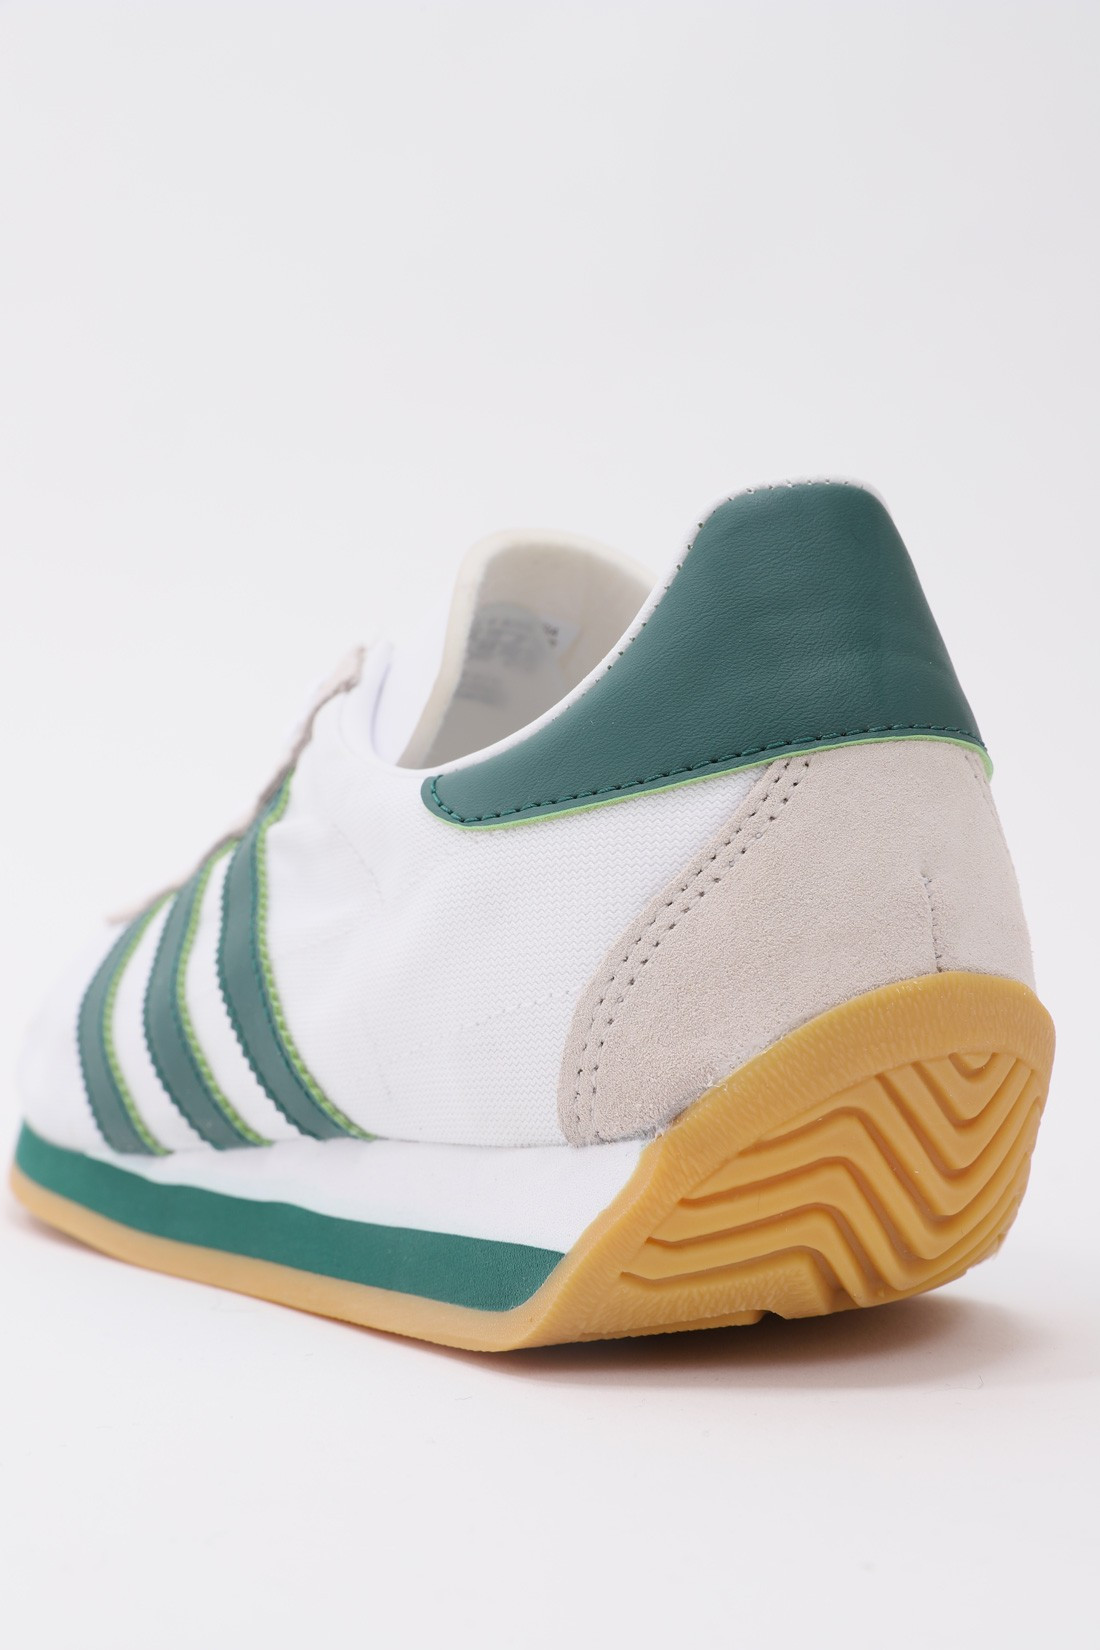 ADIDAS FOR WOMAN / Country og ee5745 White green